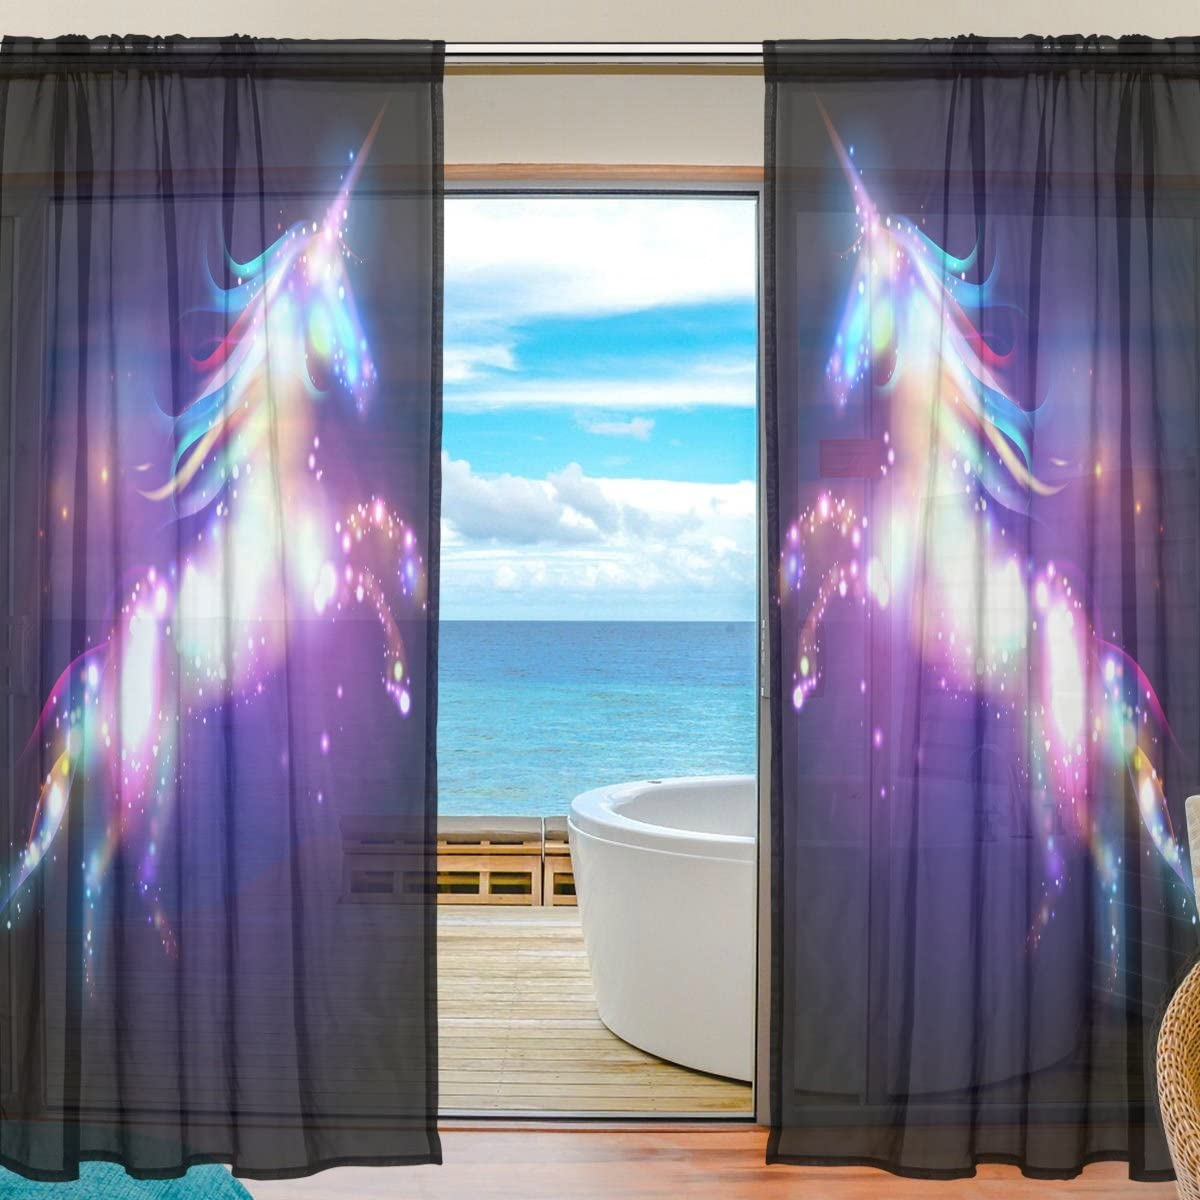 SEULIFE-Fantasy-Animal-Unicorn-Voile-Curtain-For-Doors-Or-Windows